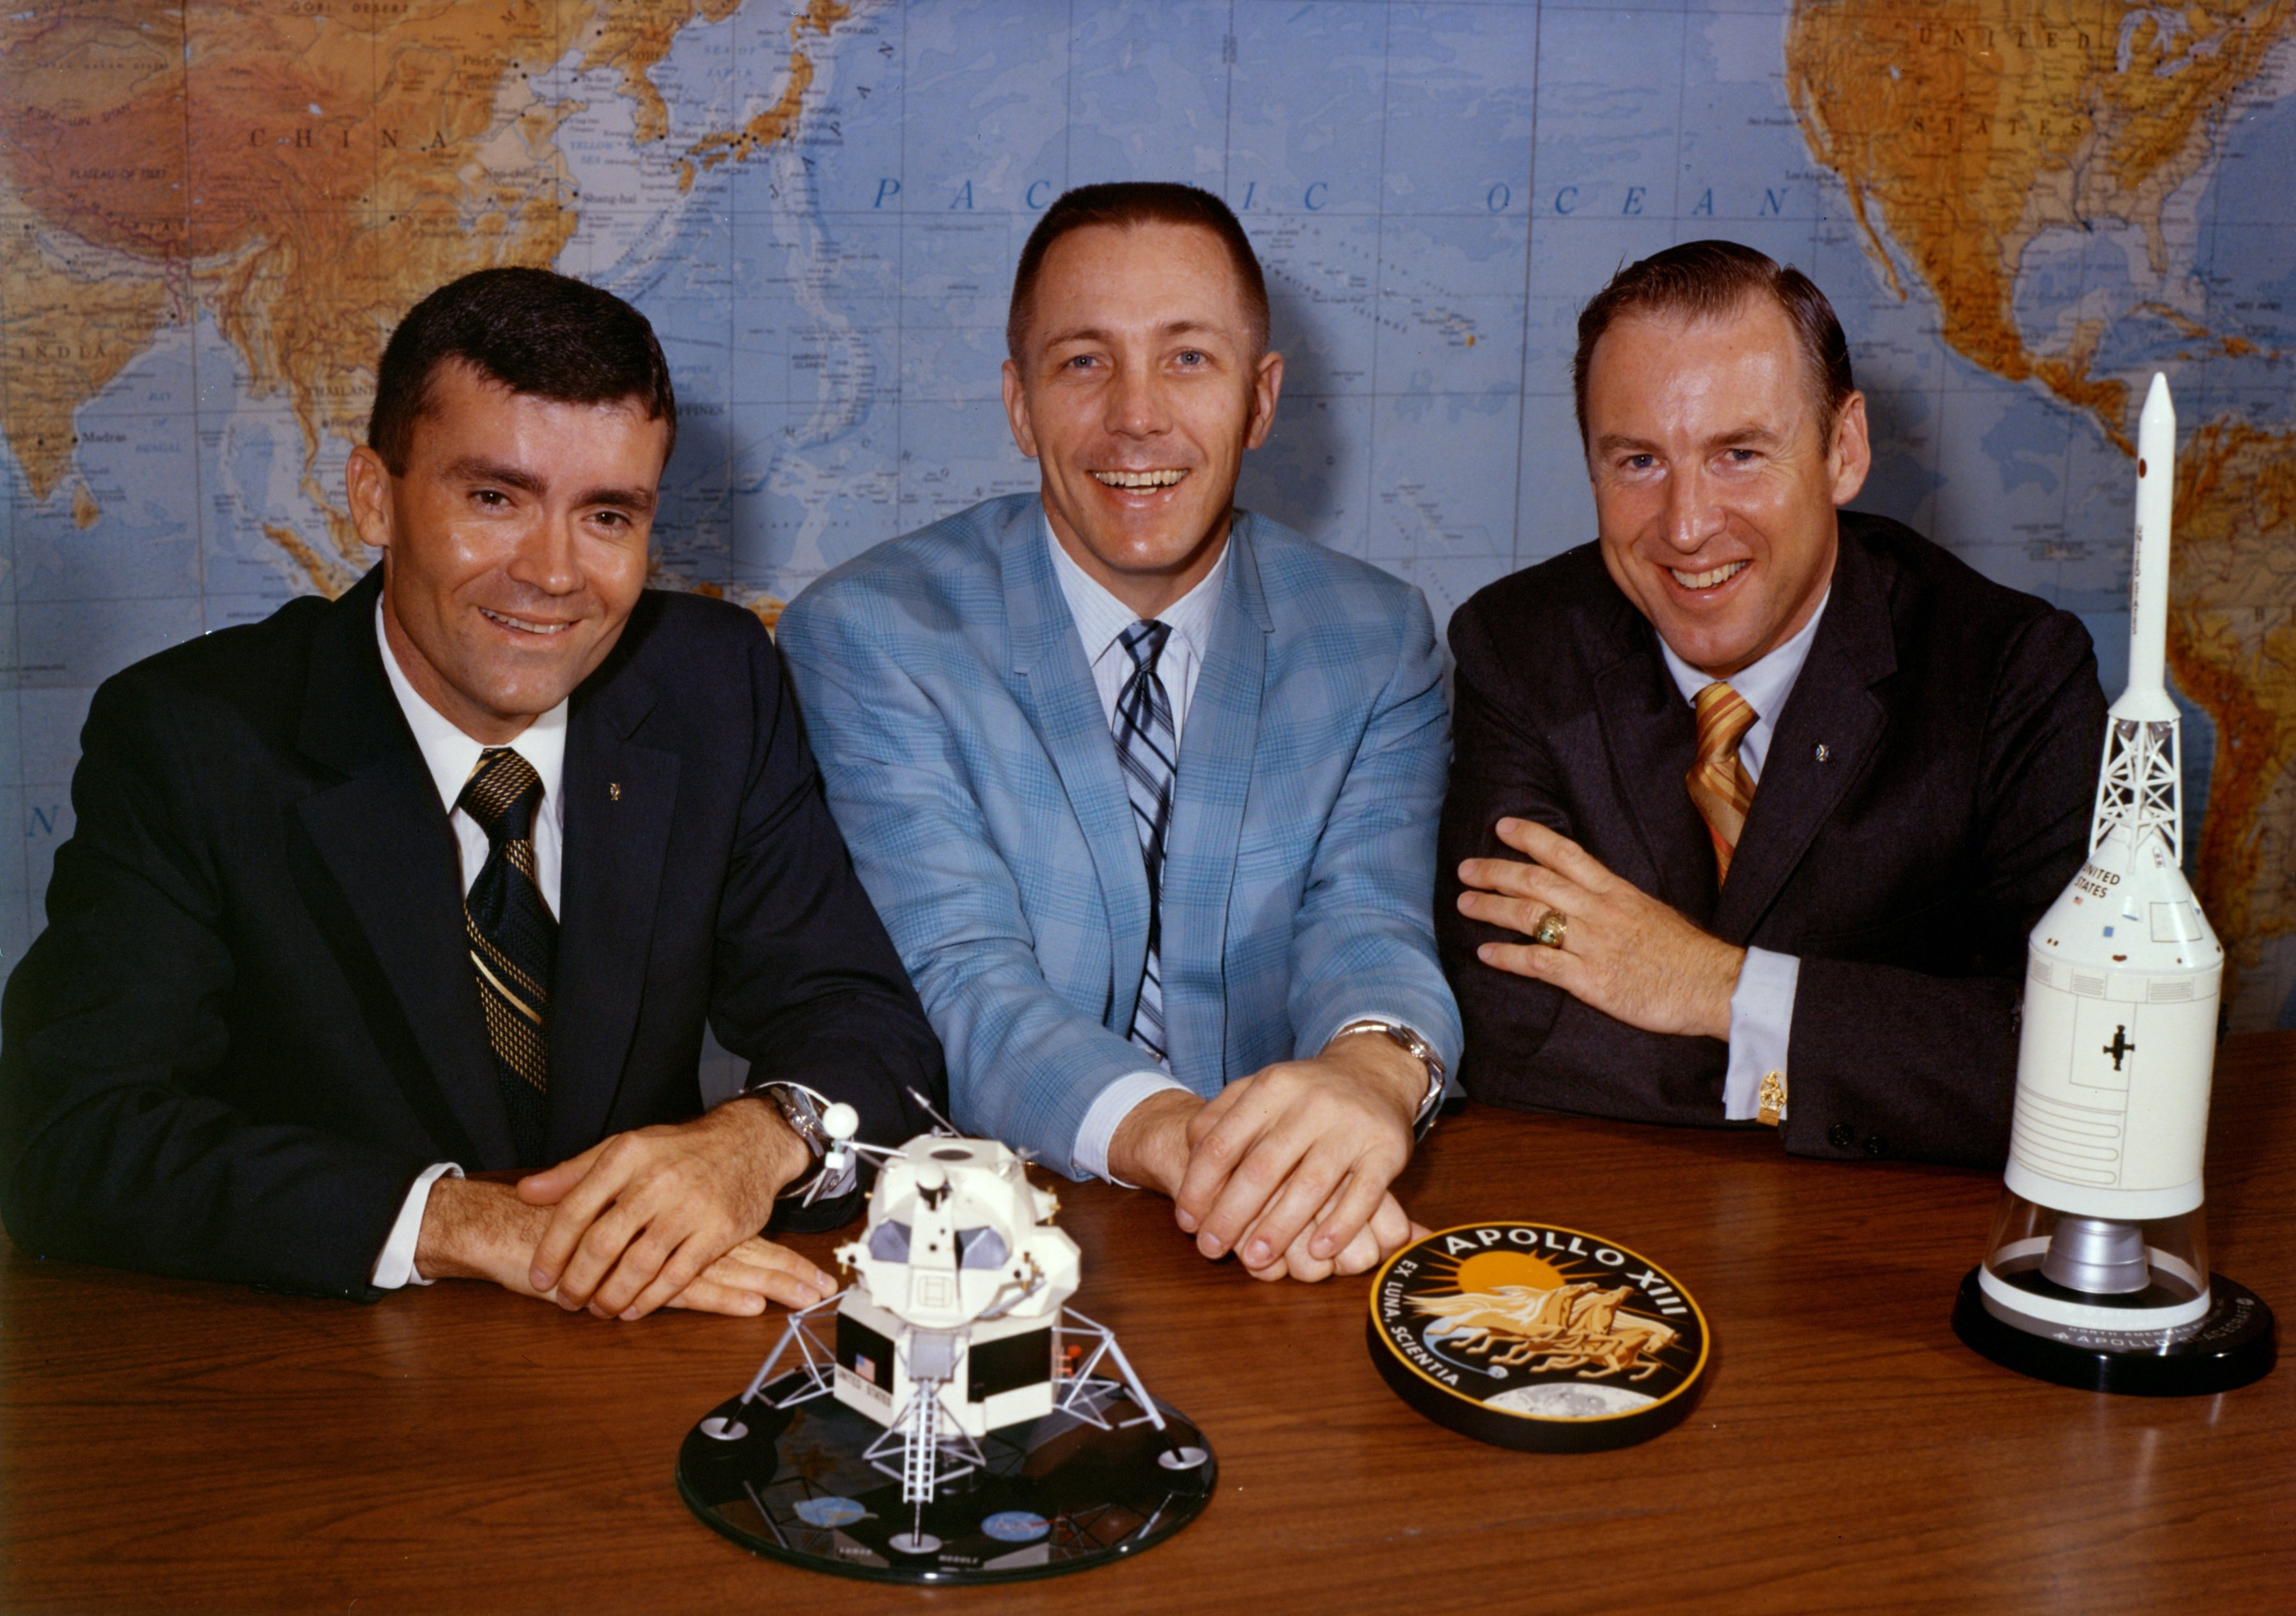 mission control houston nasa the hard won triumph of the apollo 13 mission 45 years later